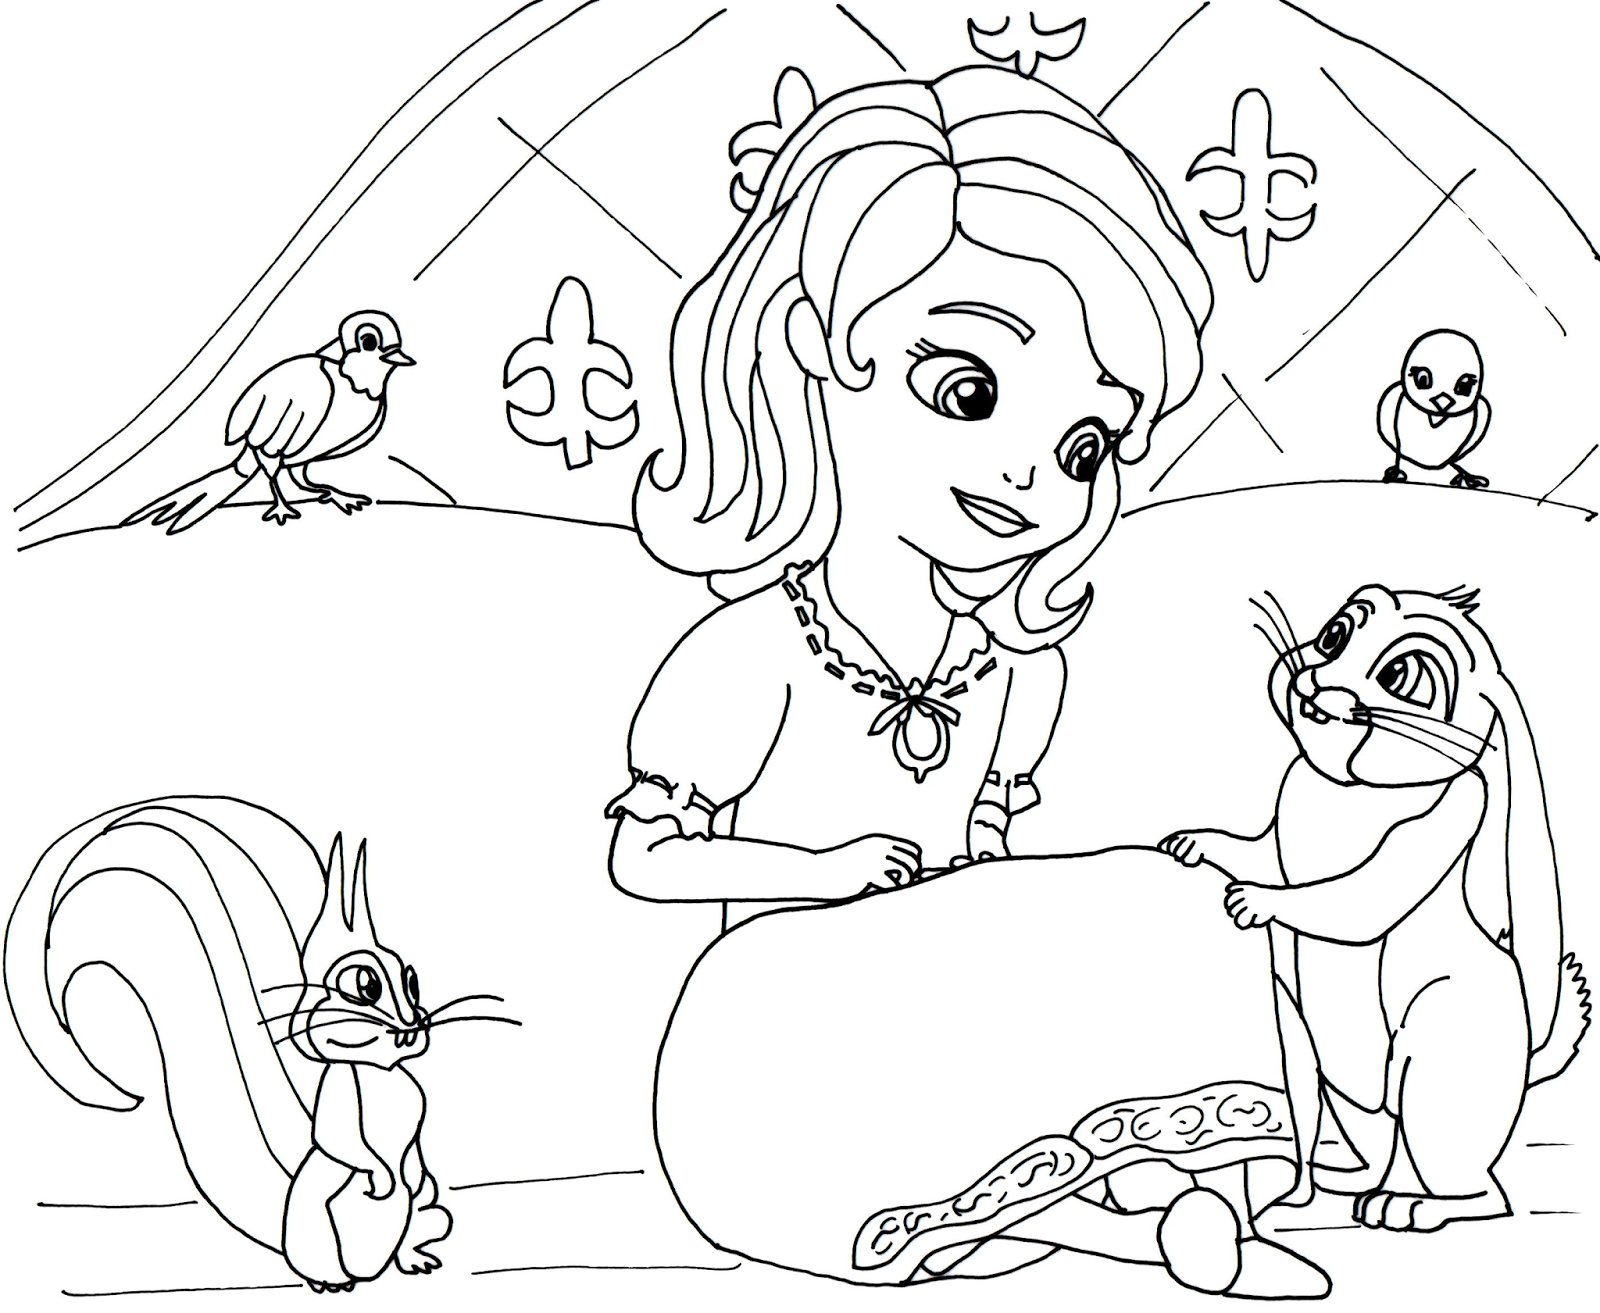 This is a graphic of Handy Sofia the First Printable Coloring Pages